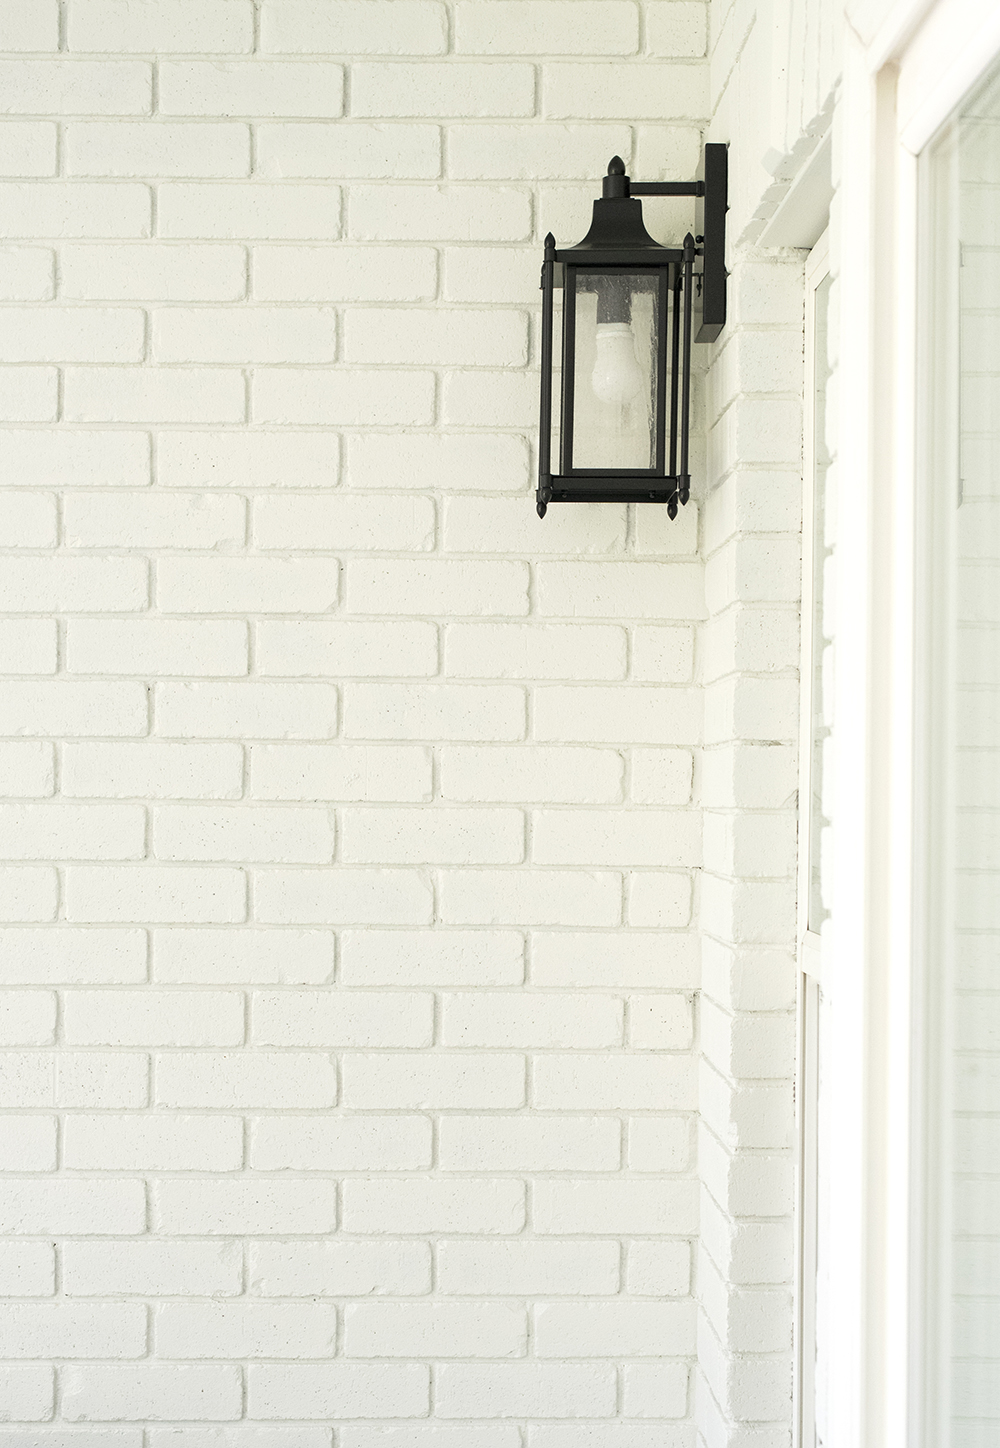 How to Paint Exterior Brick - roomfortuesday.com